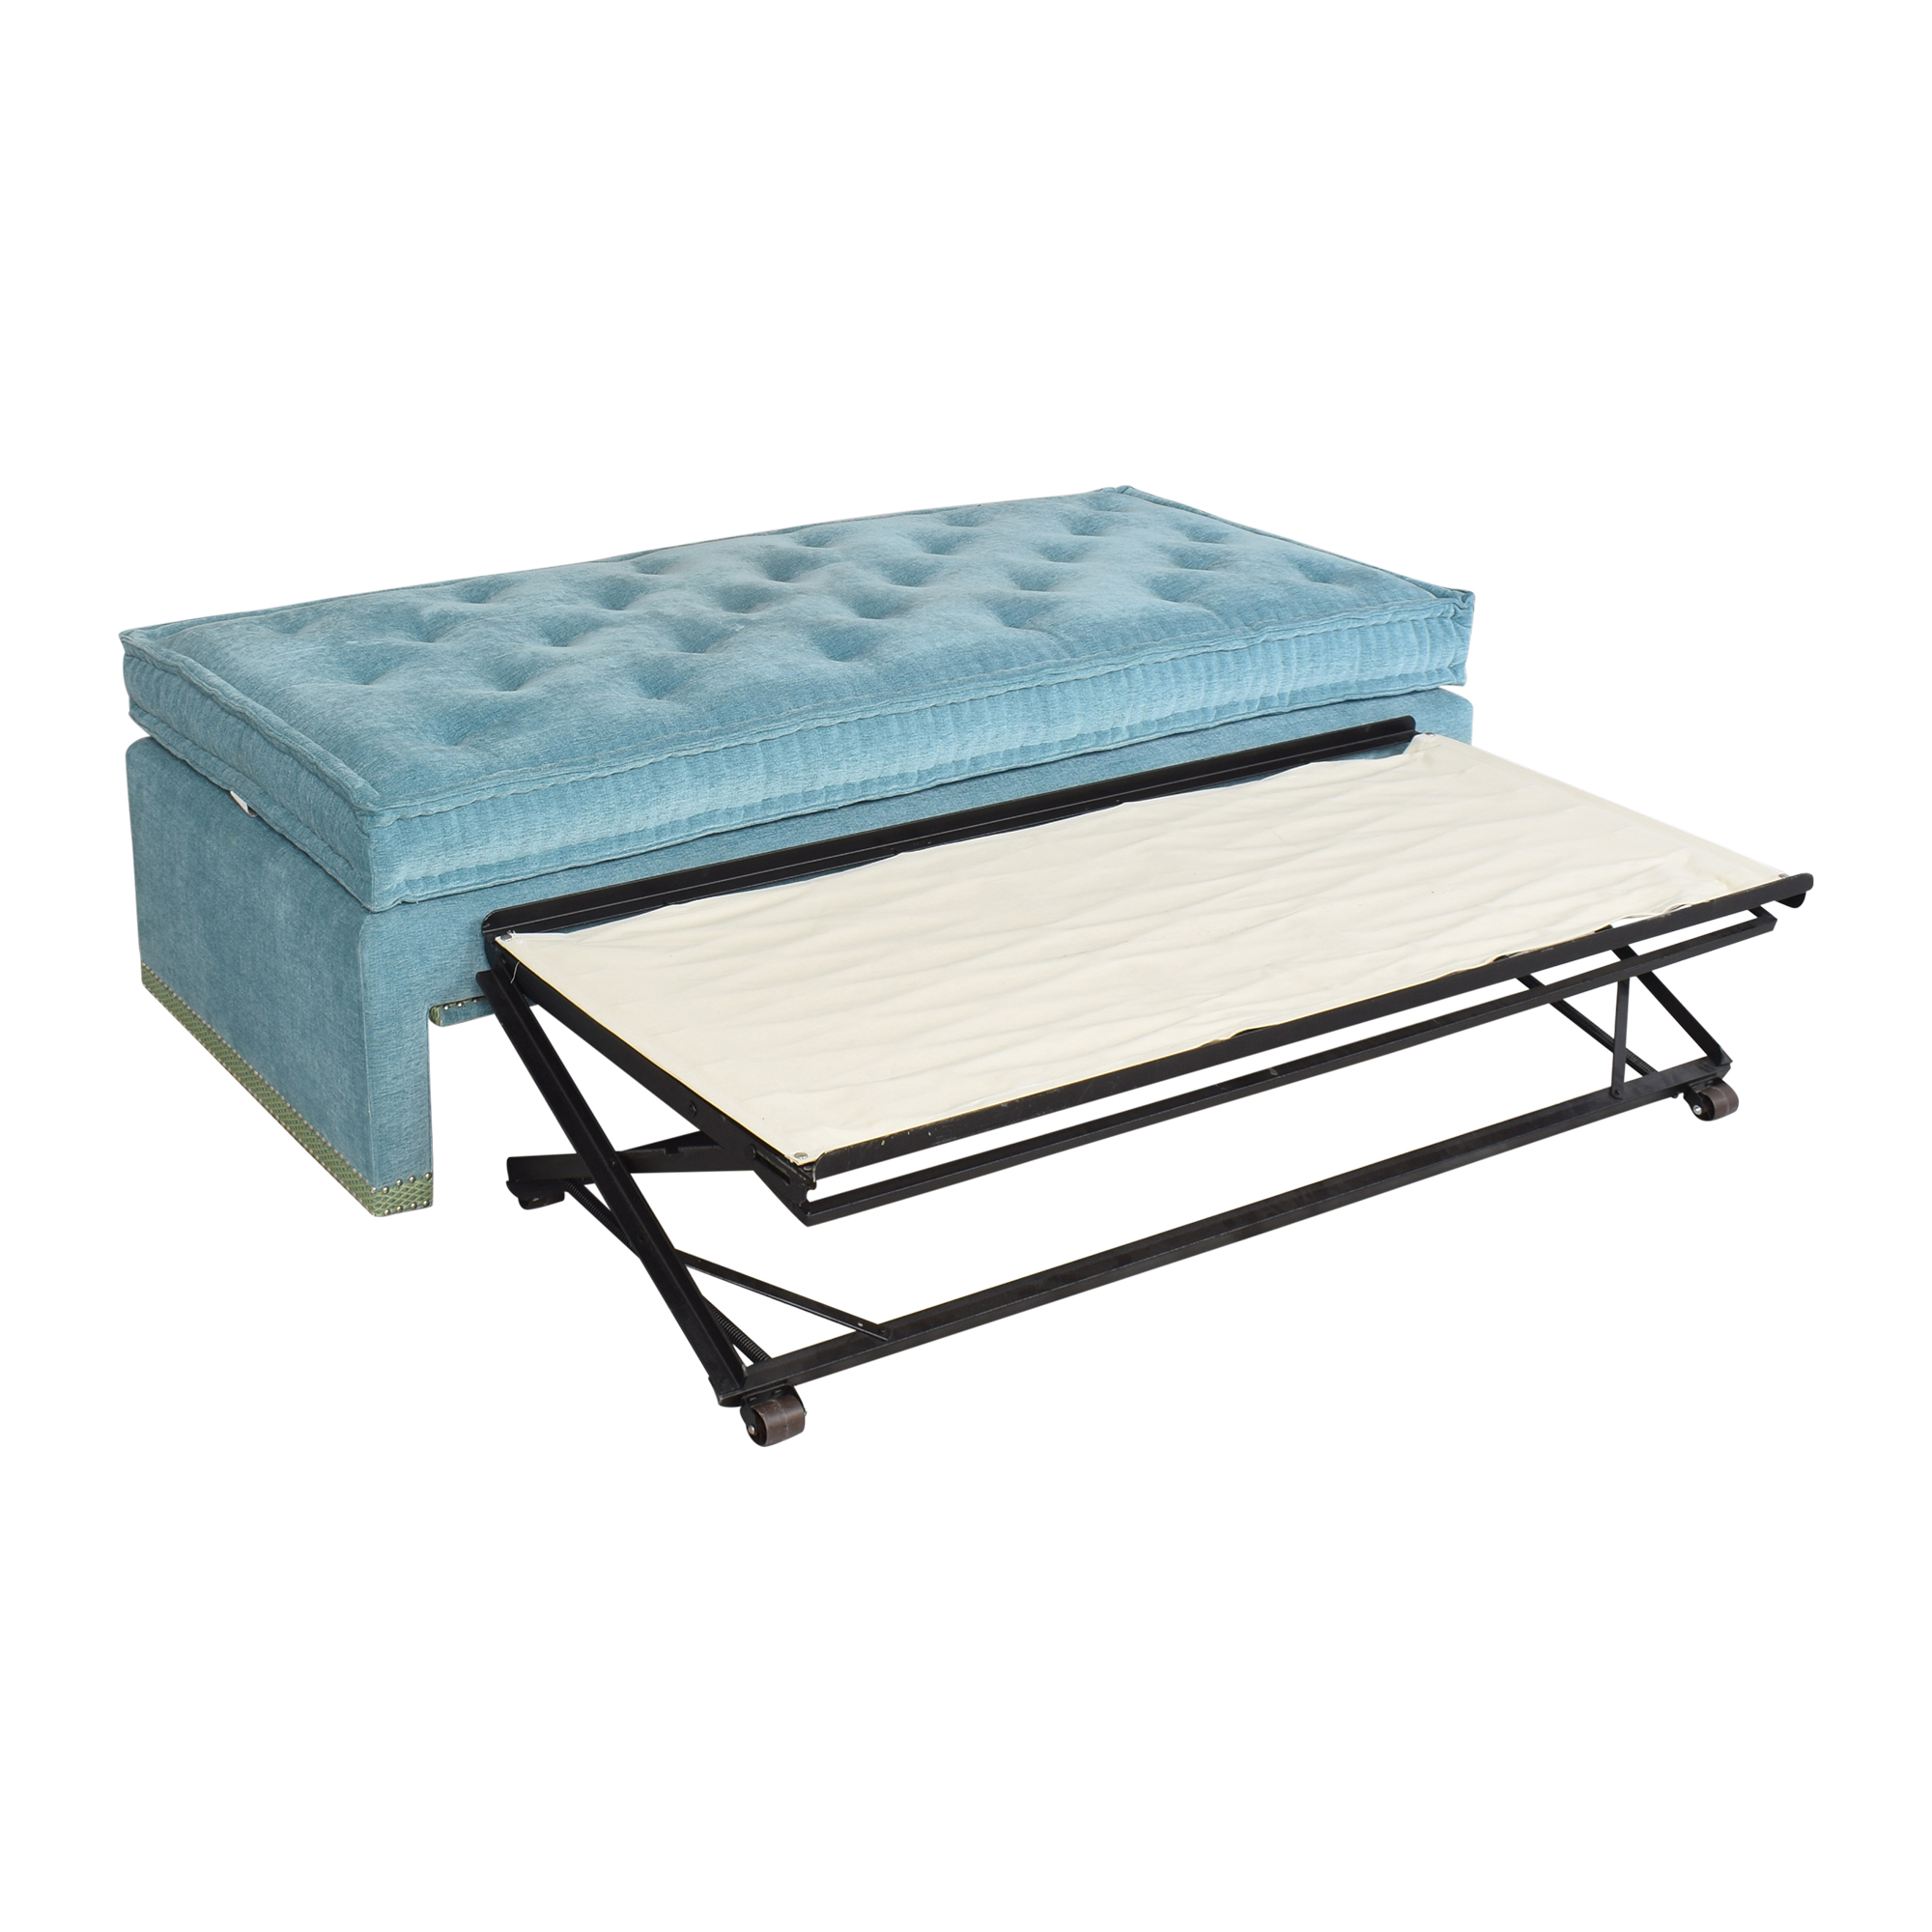 Charles H Beckley Charles H Beckley Daybed With Pop-Up Trundle Beds